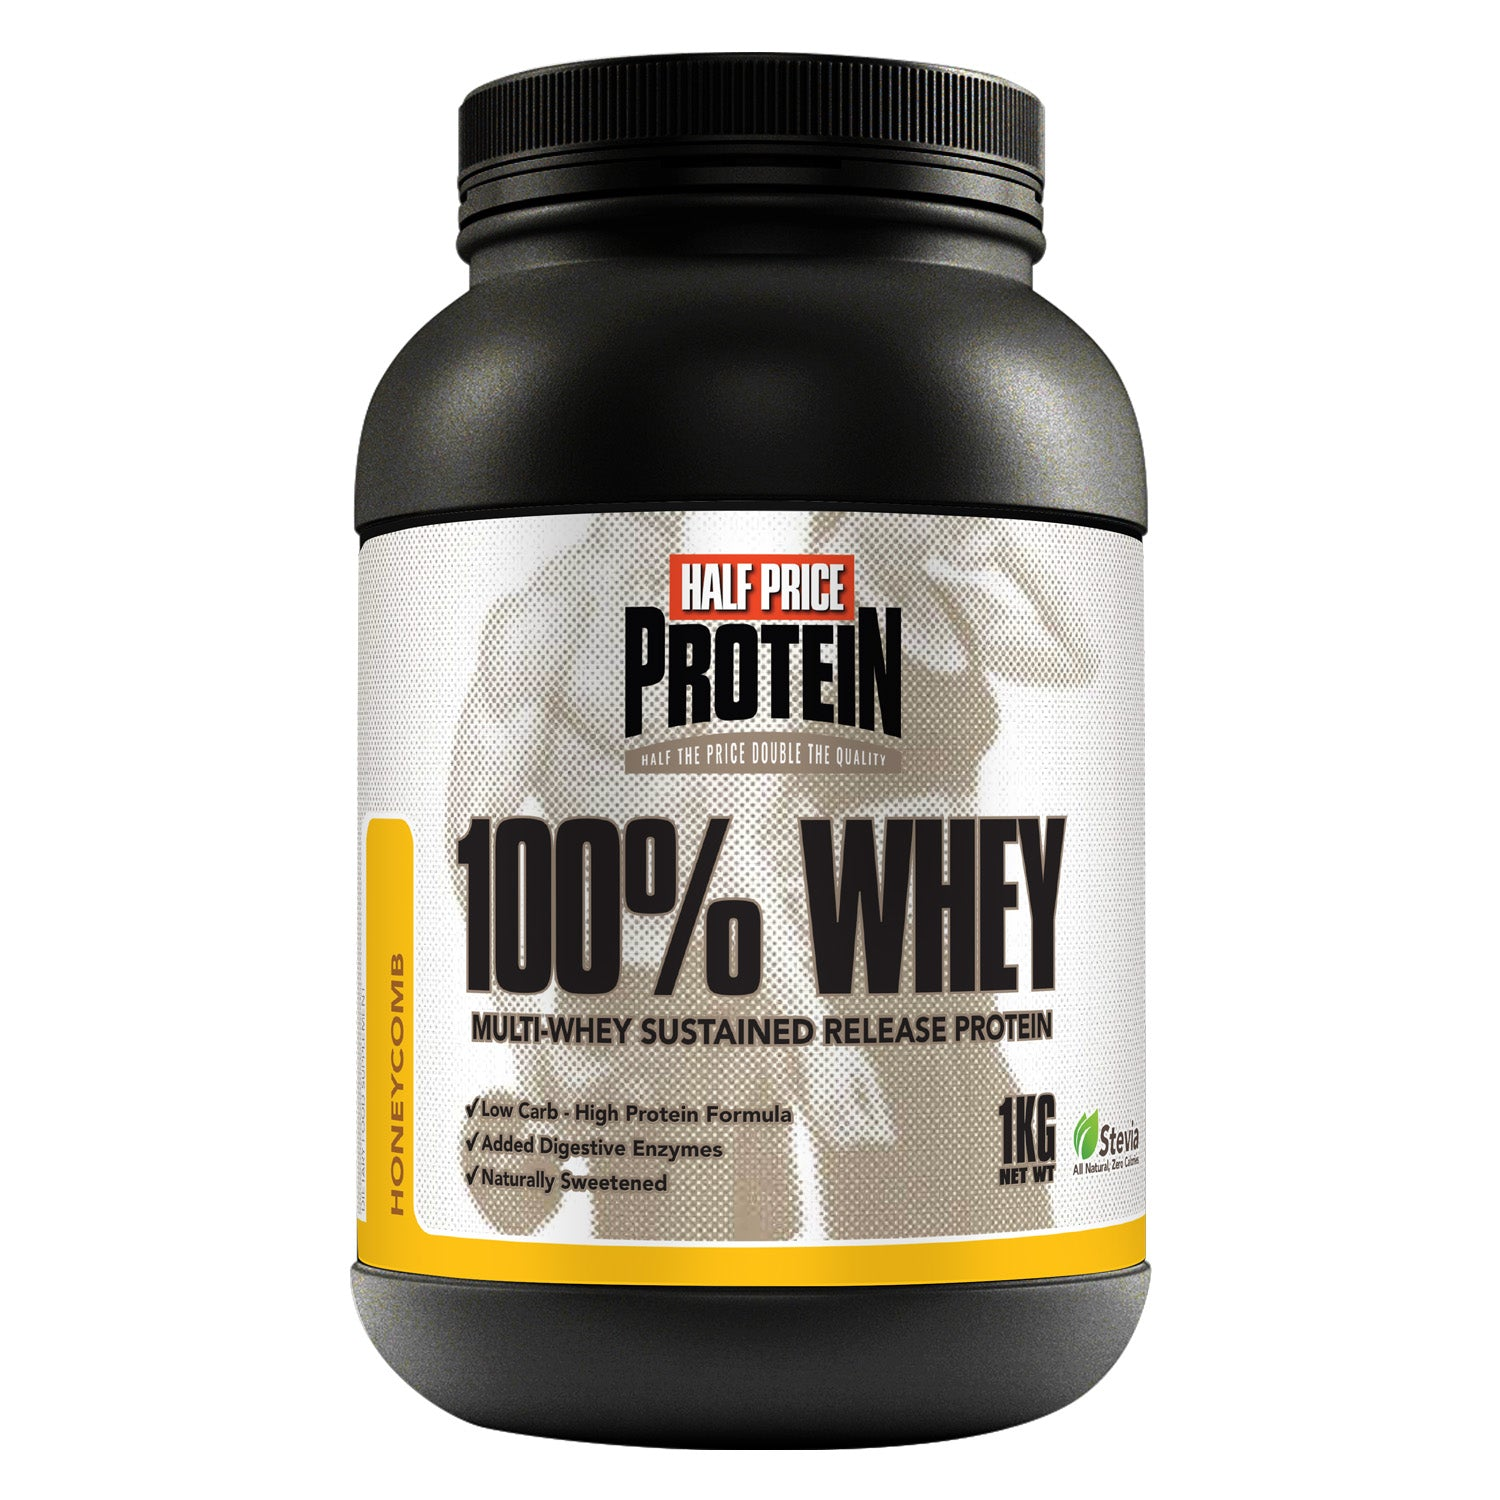 How To Get Whey Protein Naturally